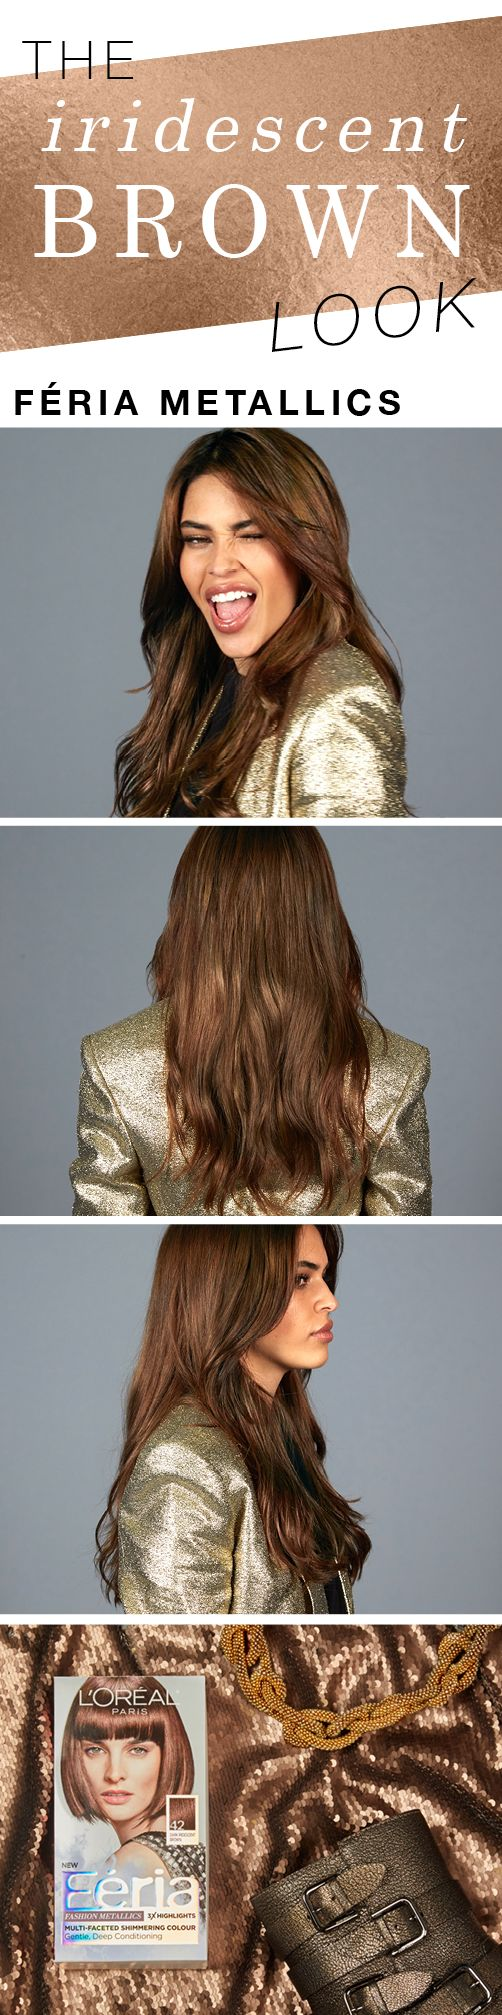 Introducing our favorite 2017 hair color trend… iridescent brown. Get multi-faceted, shimmering color that's totally trending. Féria Fashion Metallics in Rose Gold.